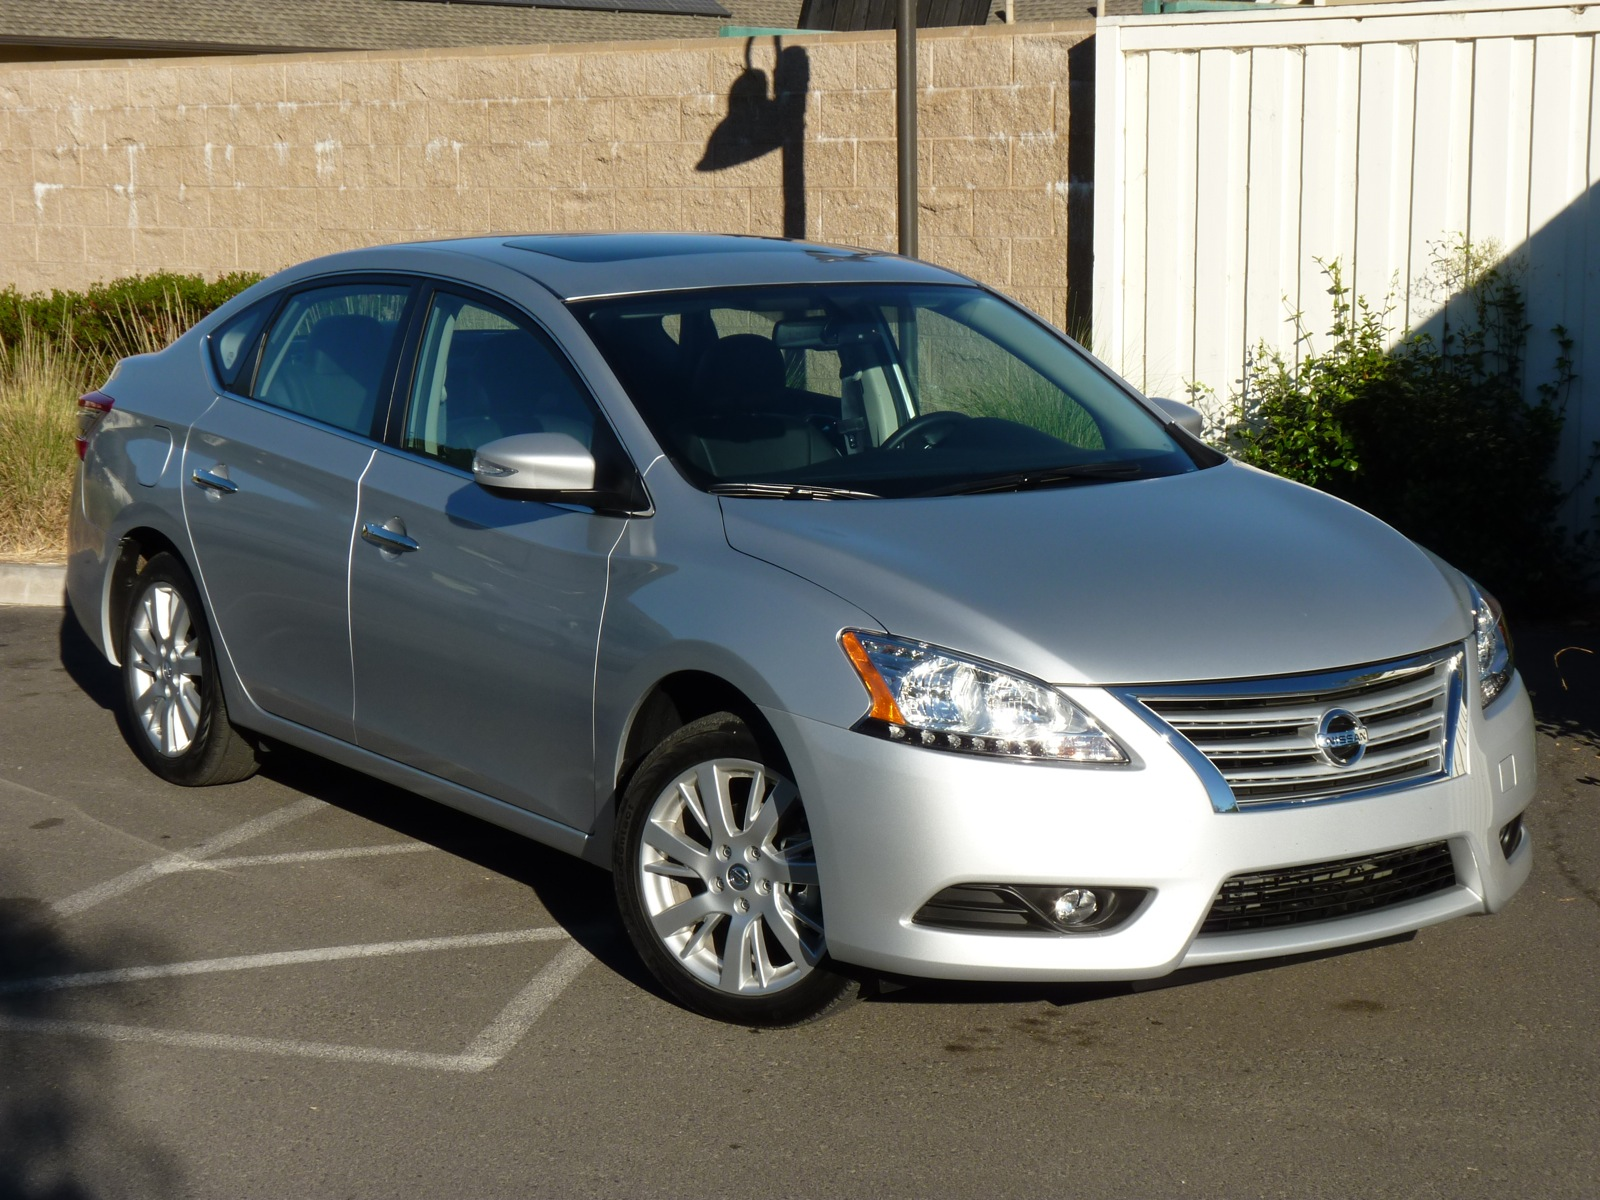 2013 nissan sentra details reviews gas mileage. Black Bedroom Furniture Sets. Home Design Ideas